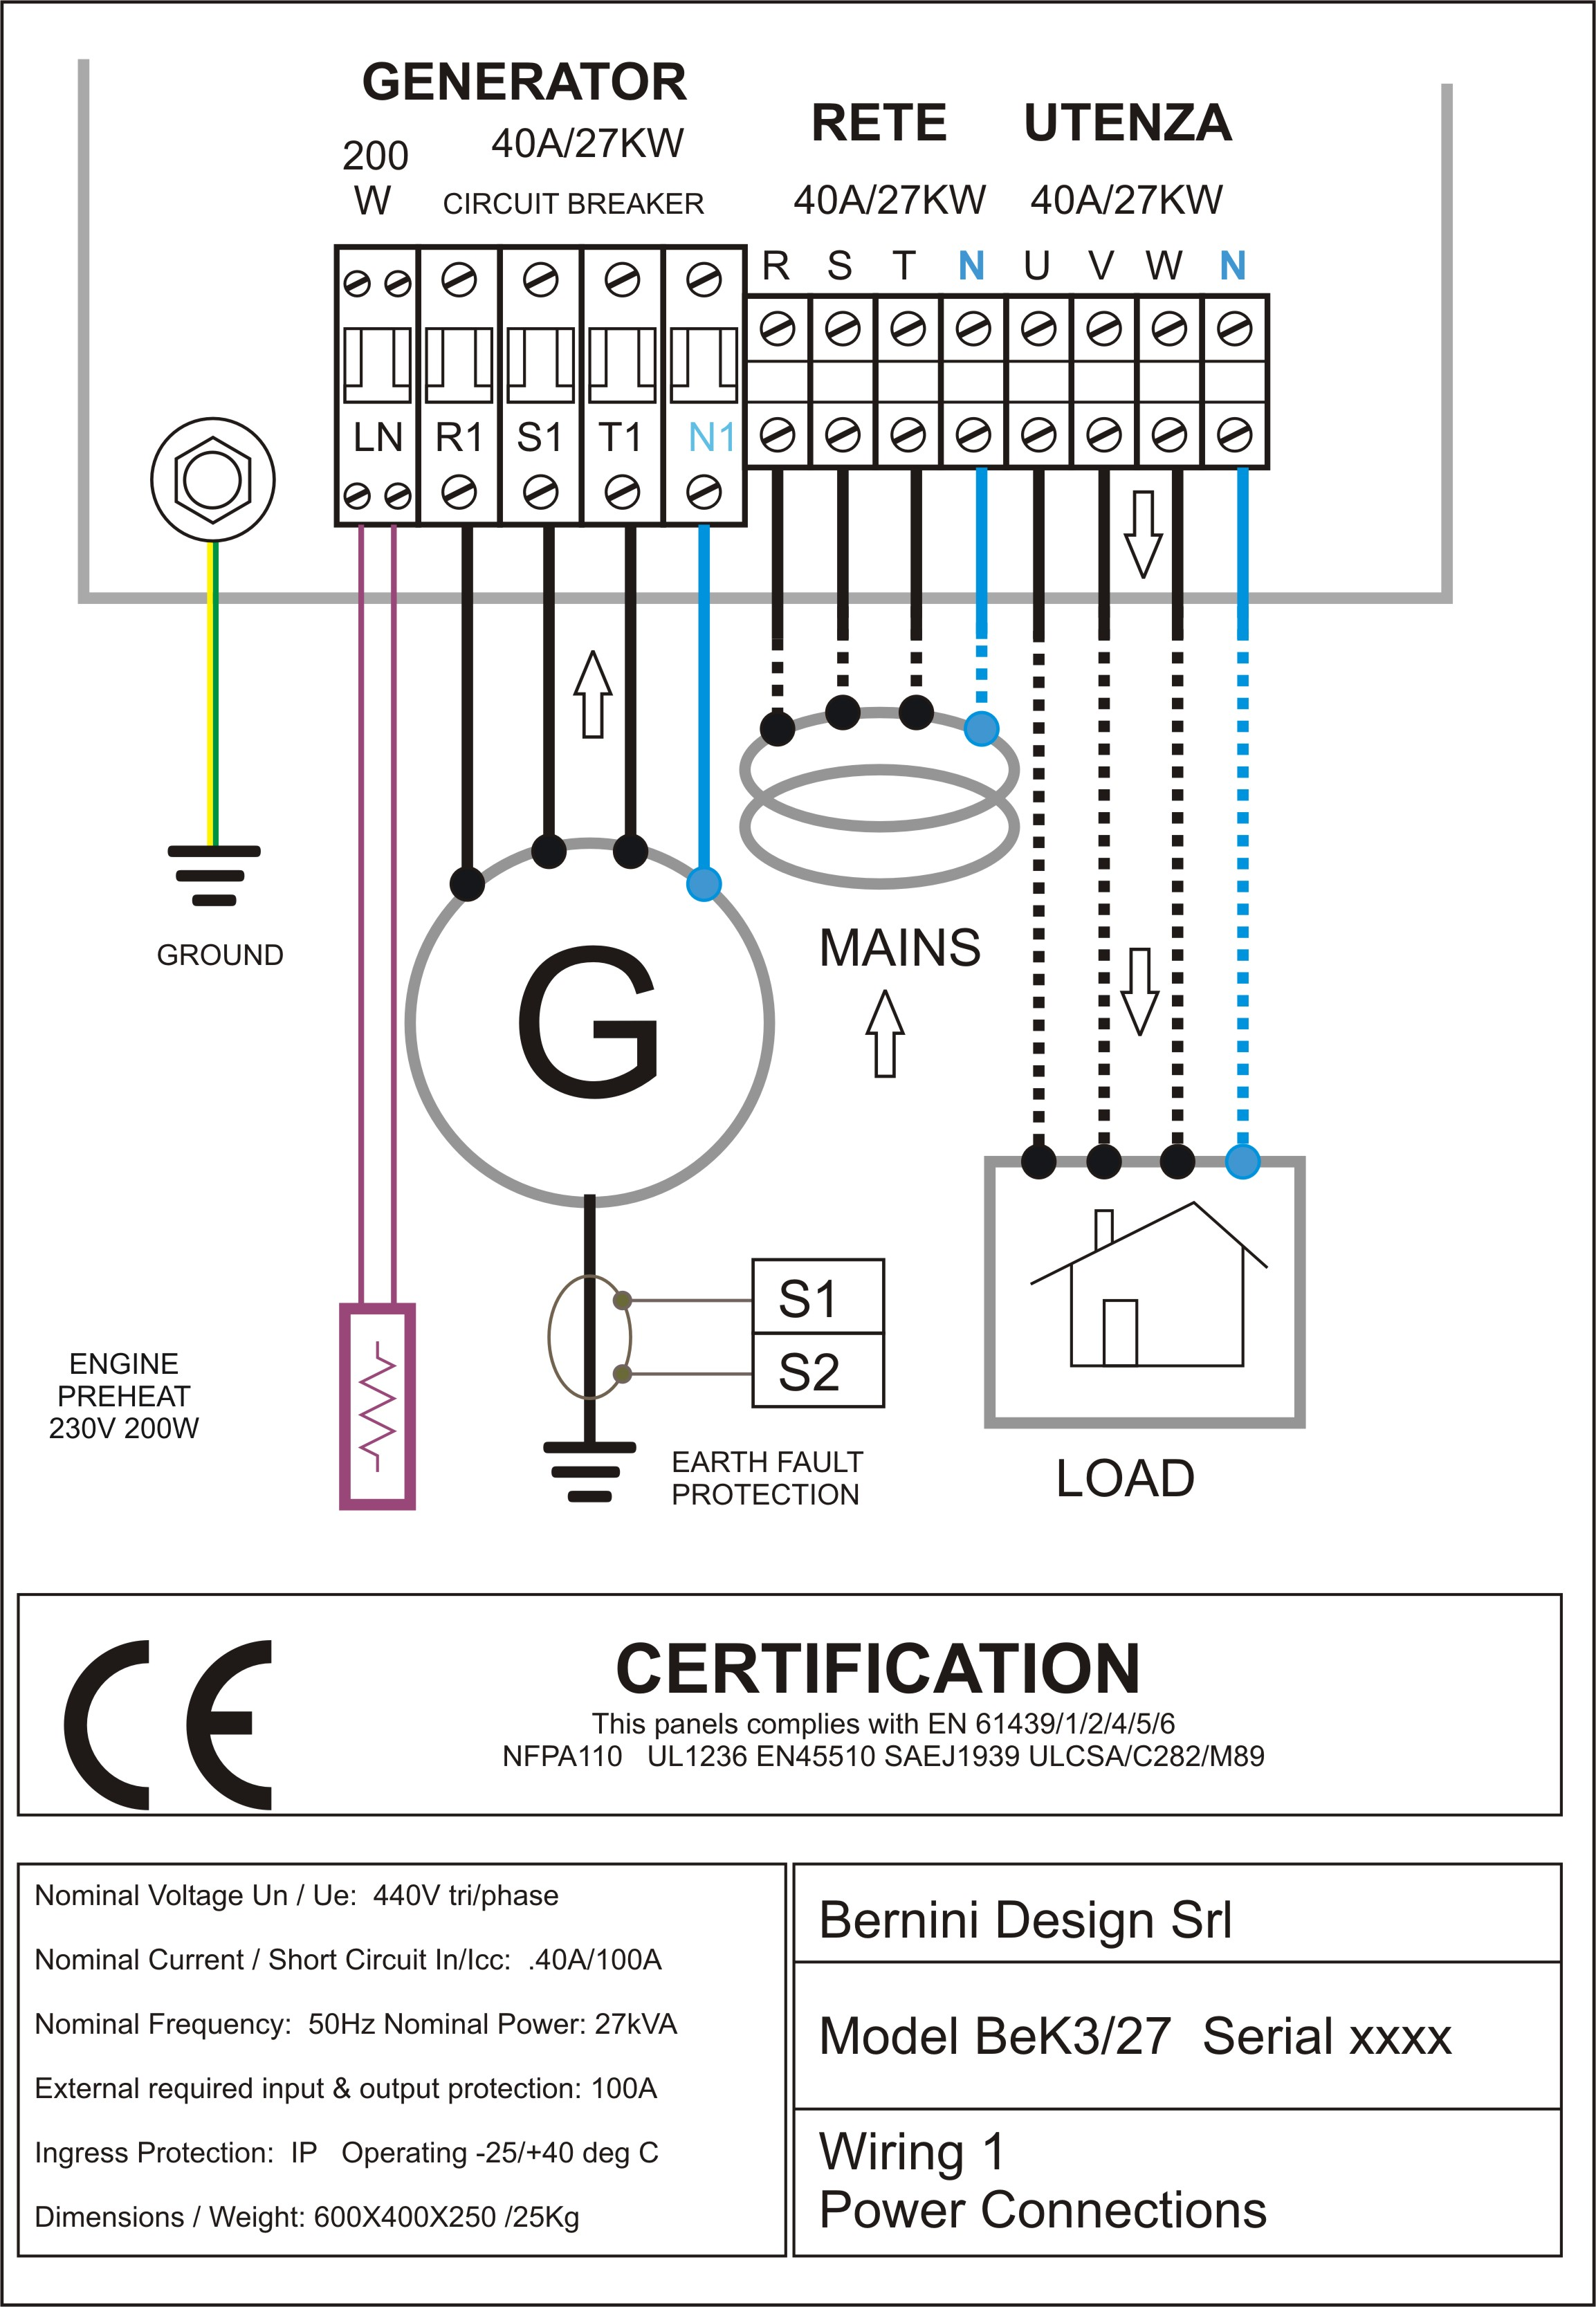 amf panel wiring diagram amf control panel circuit diagram pdf genset controller amf control panel circuit diagram pdf ac connections